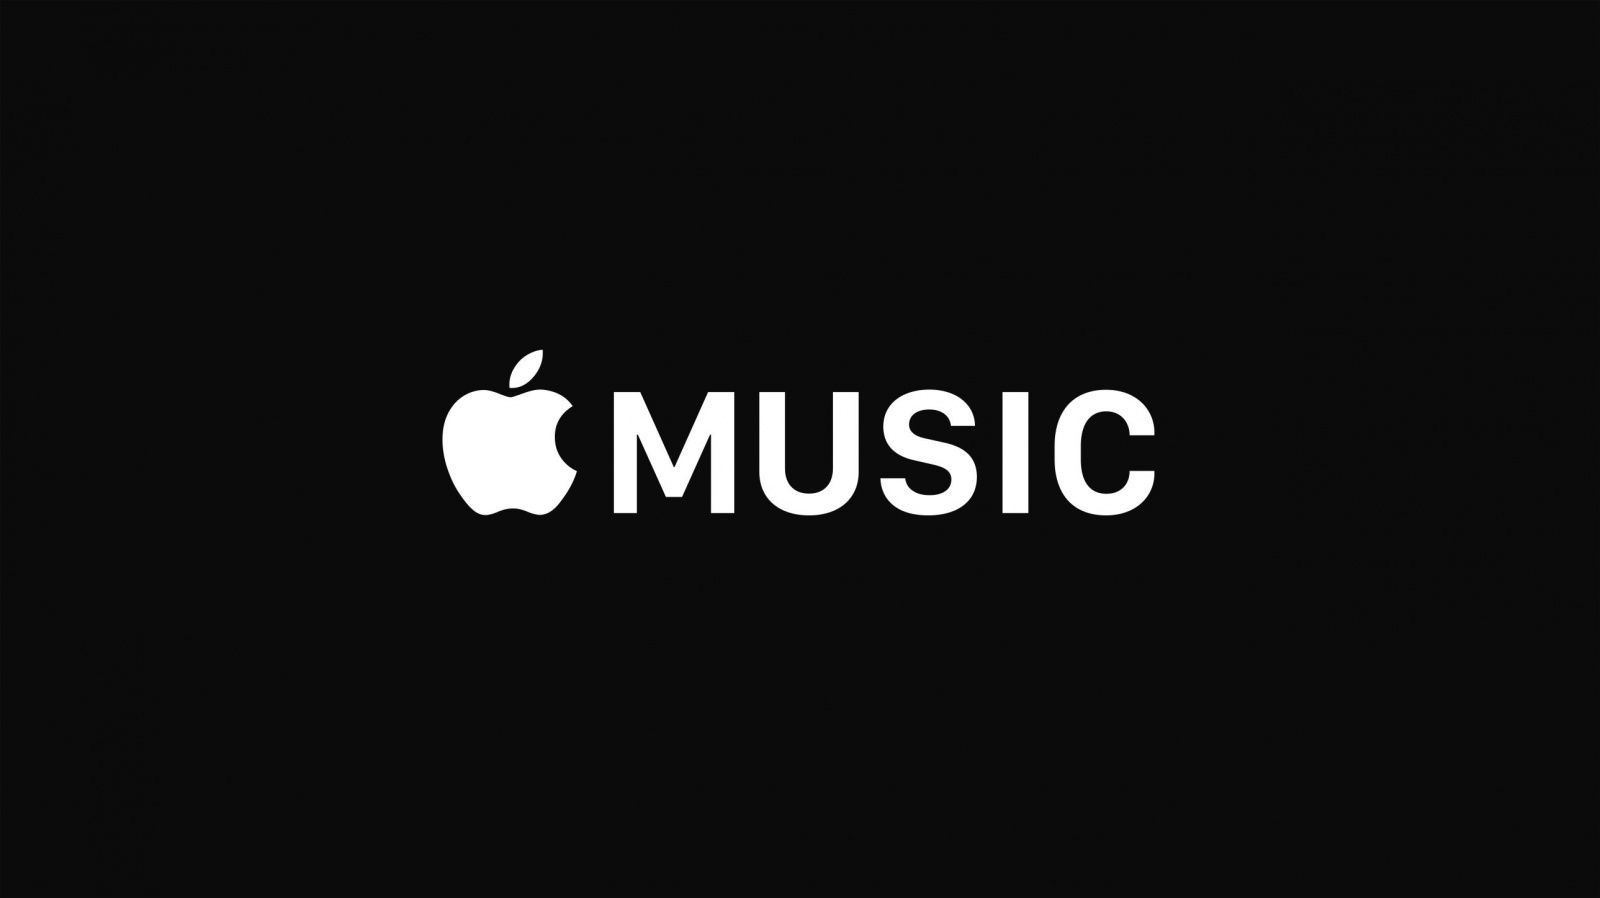 Once again, Apple is said to be developing high-res audio formats